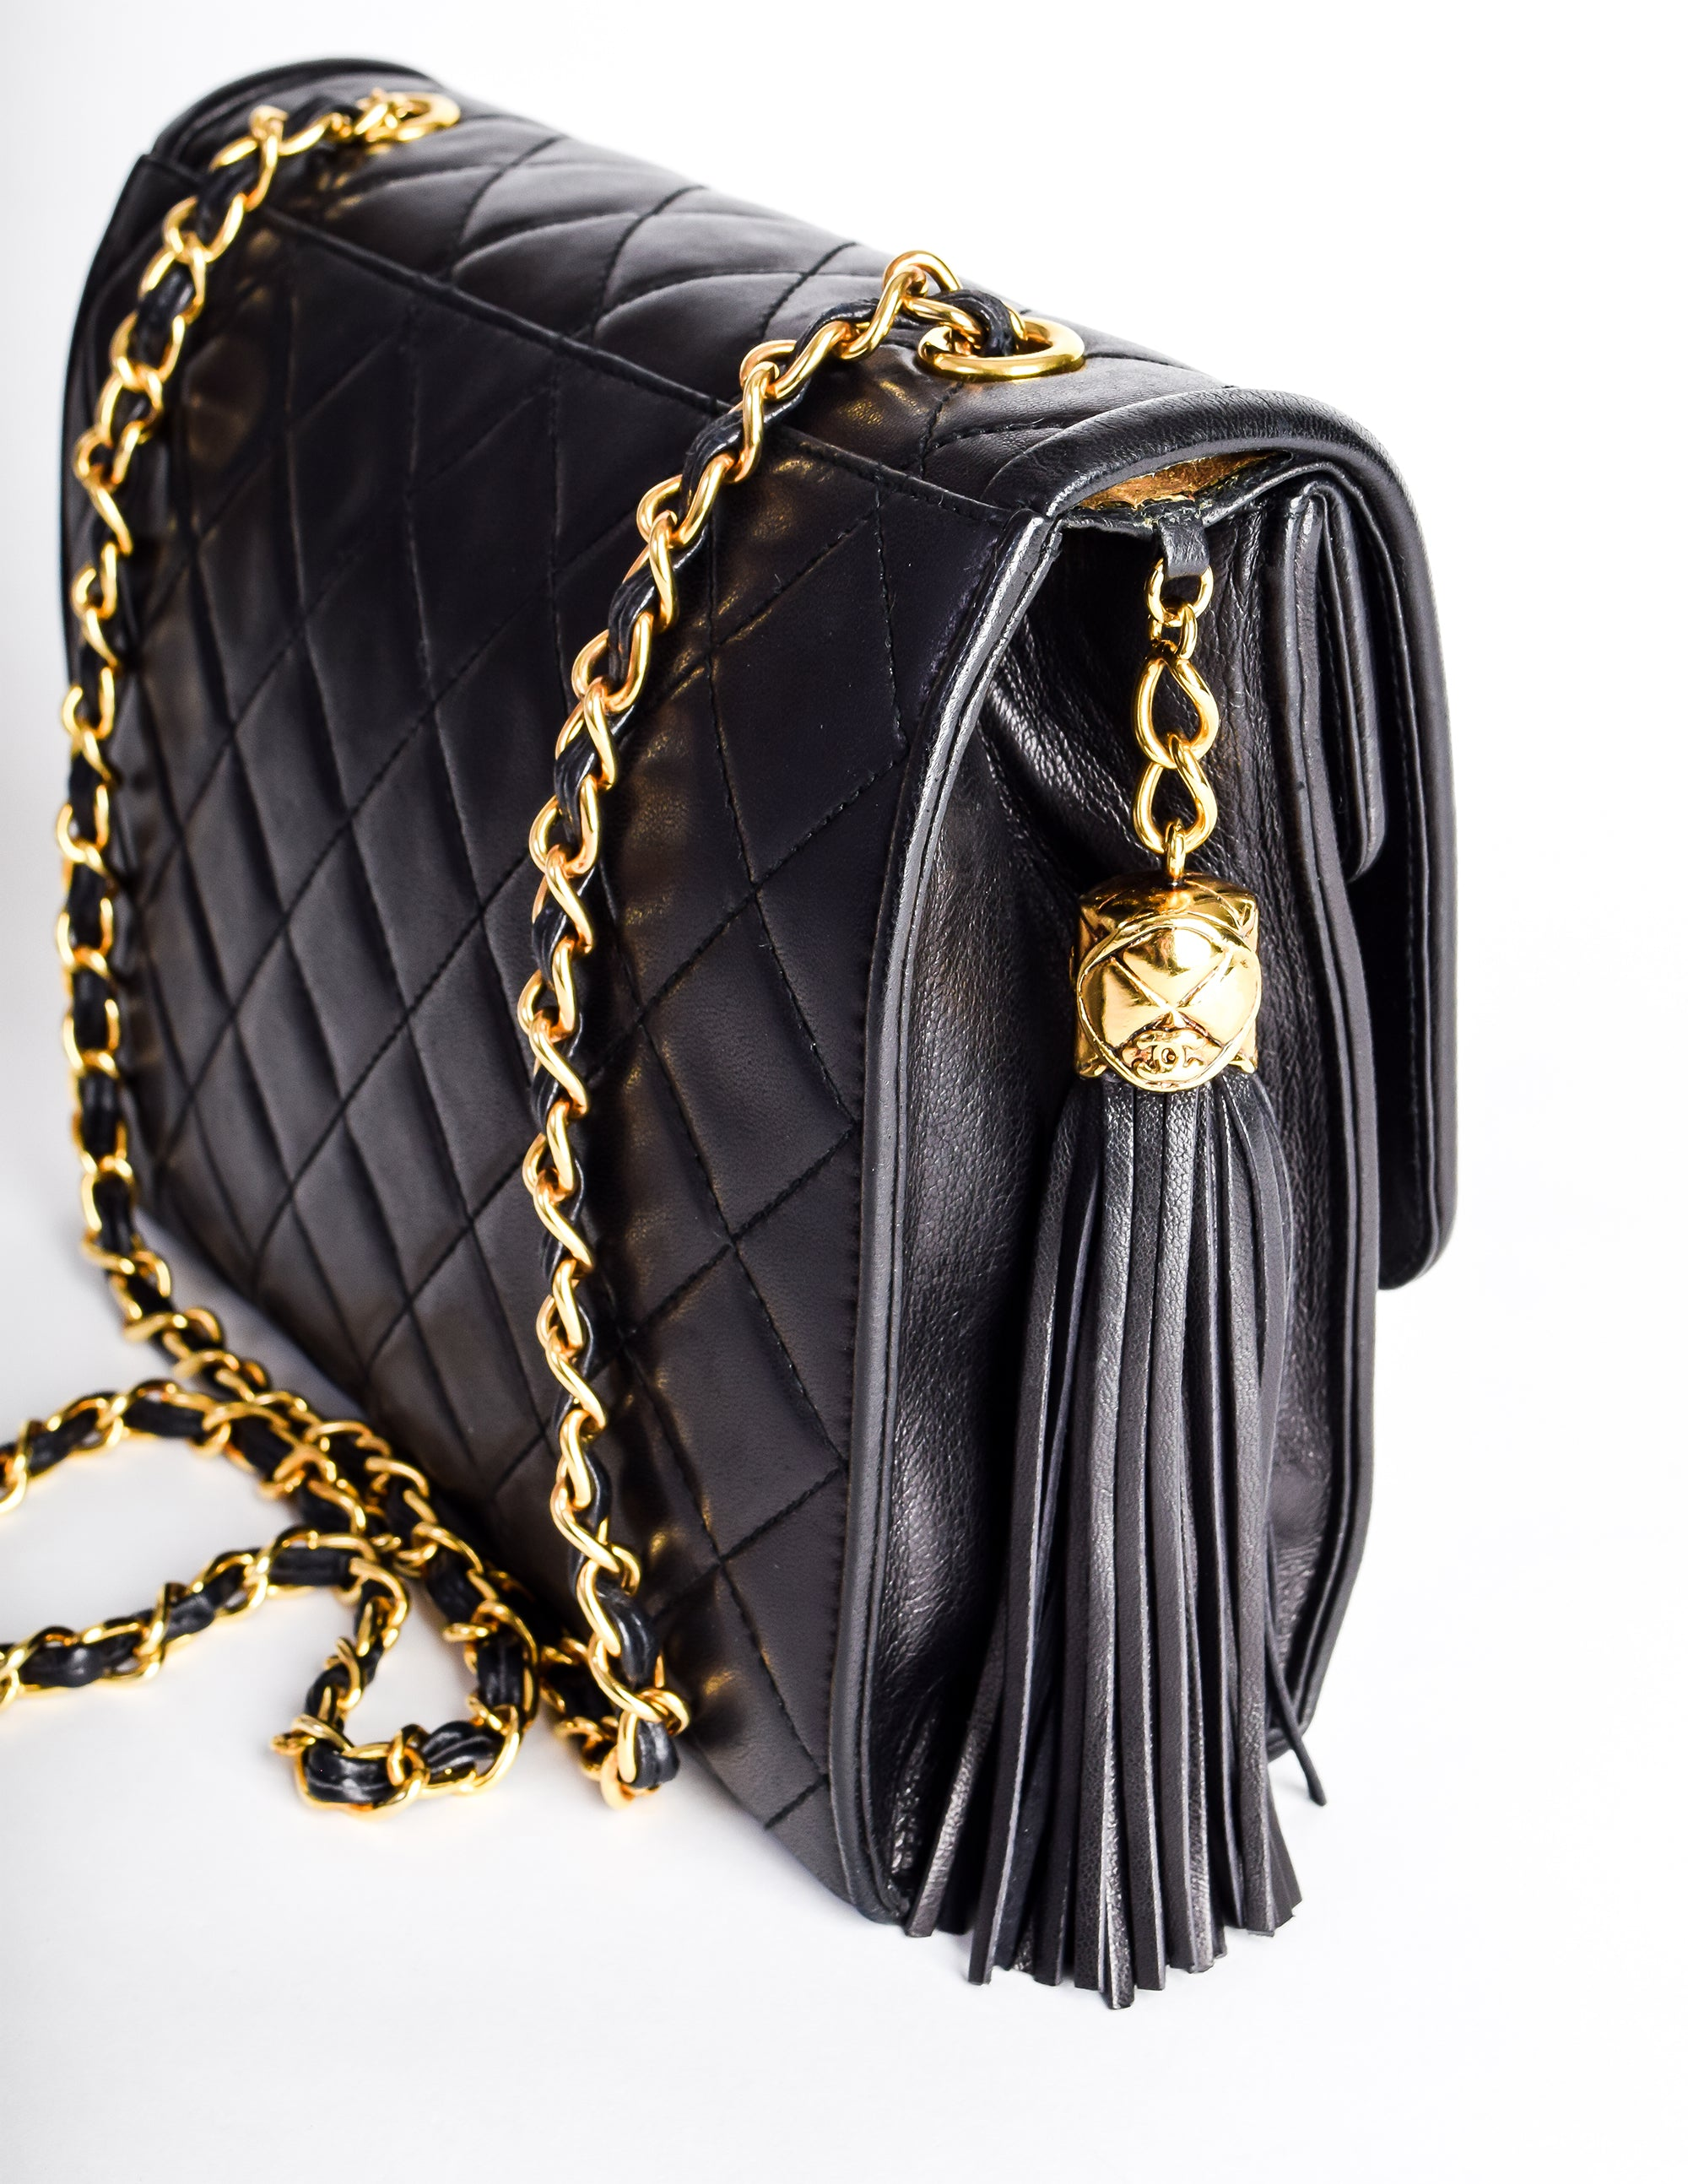 acb700838a3e Chanel Vintage Black Quilted Lambskin Crossover Double Flap Tassel Bag